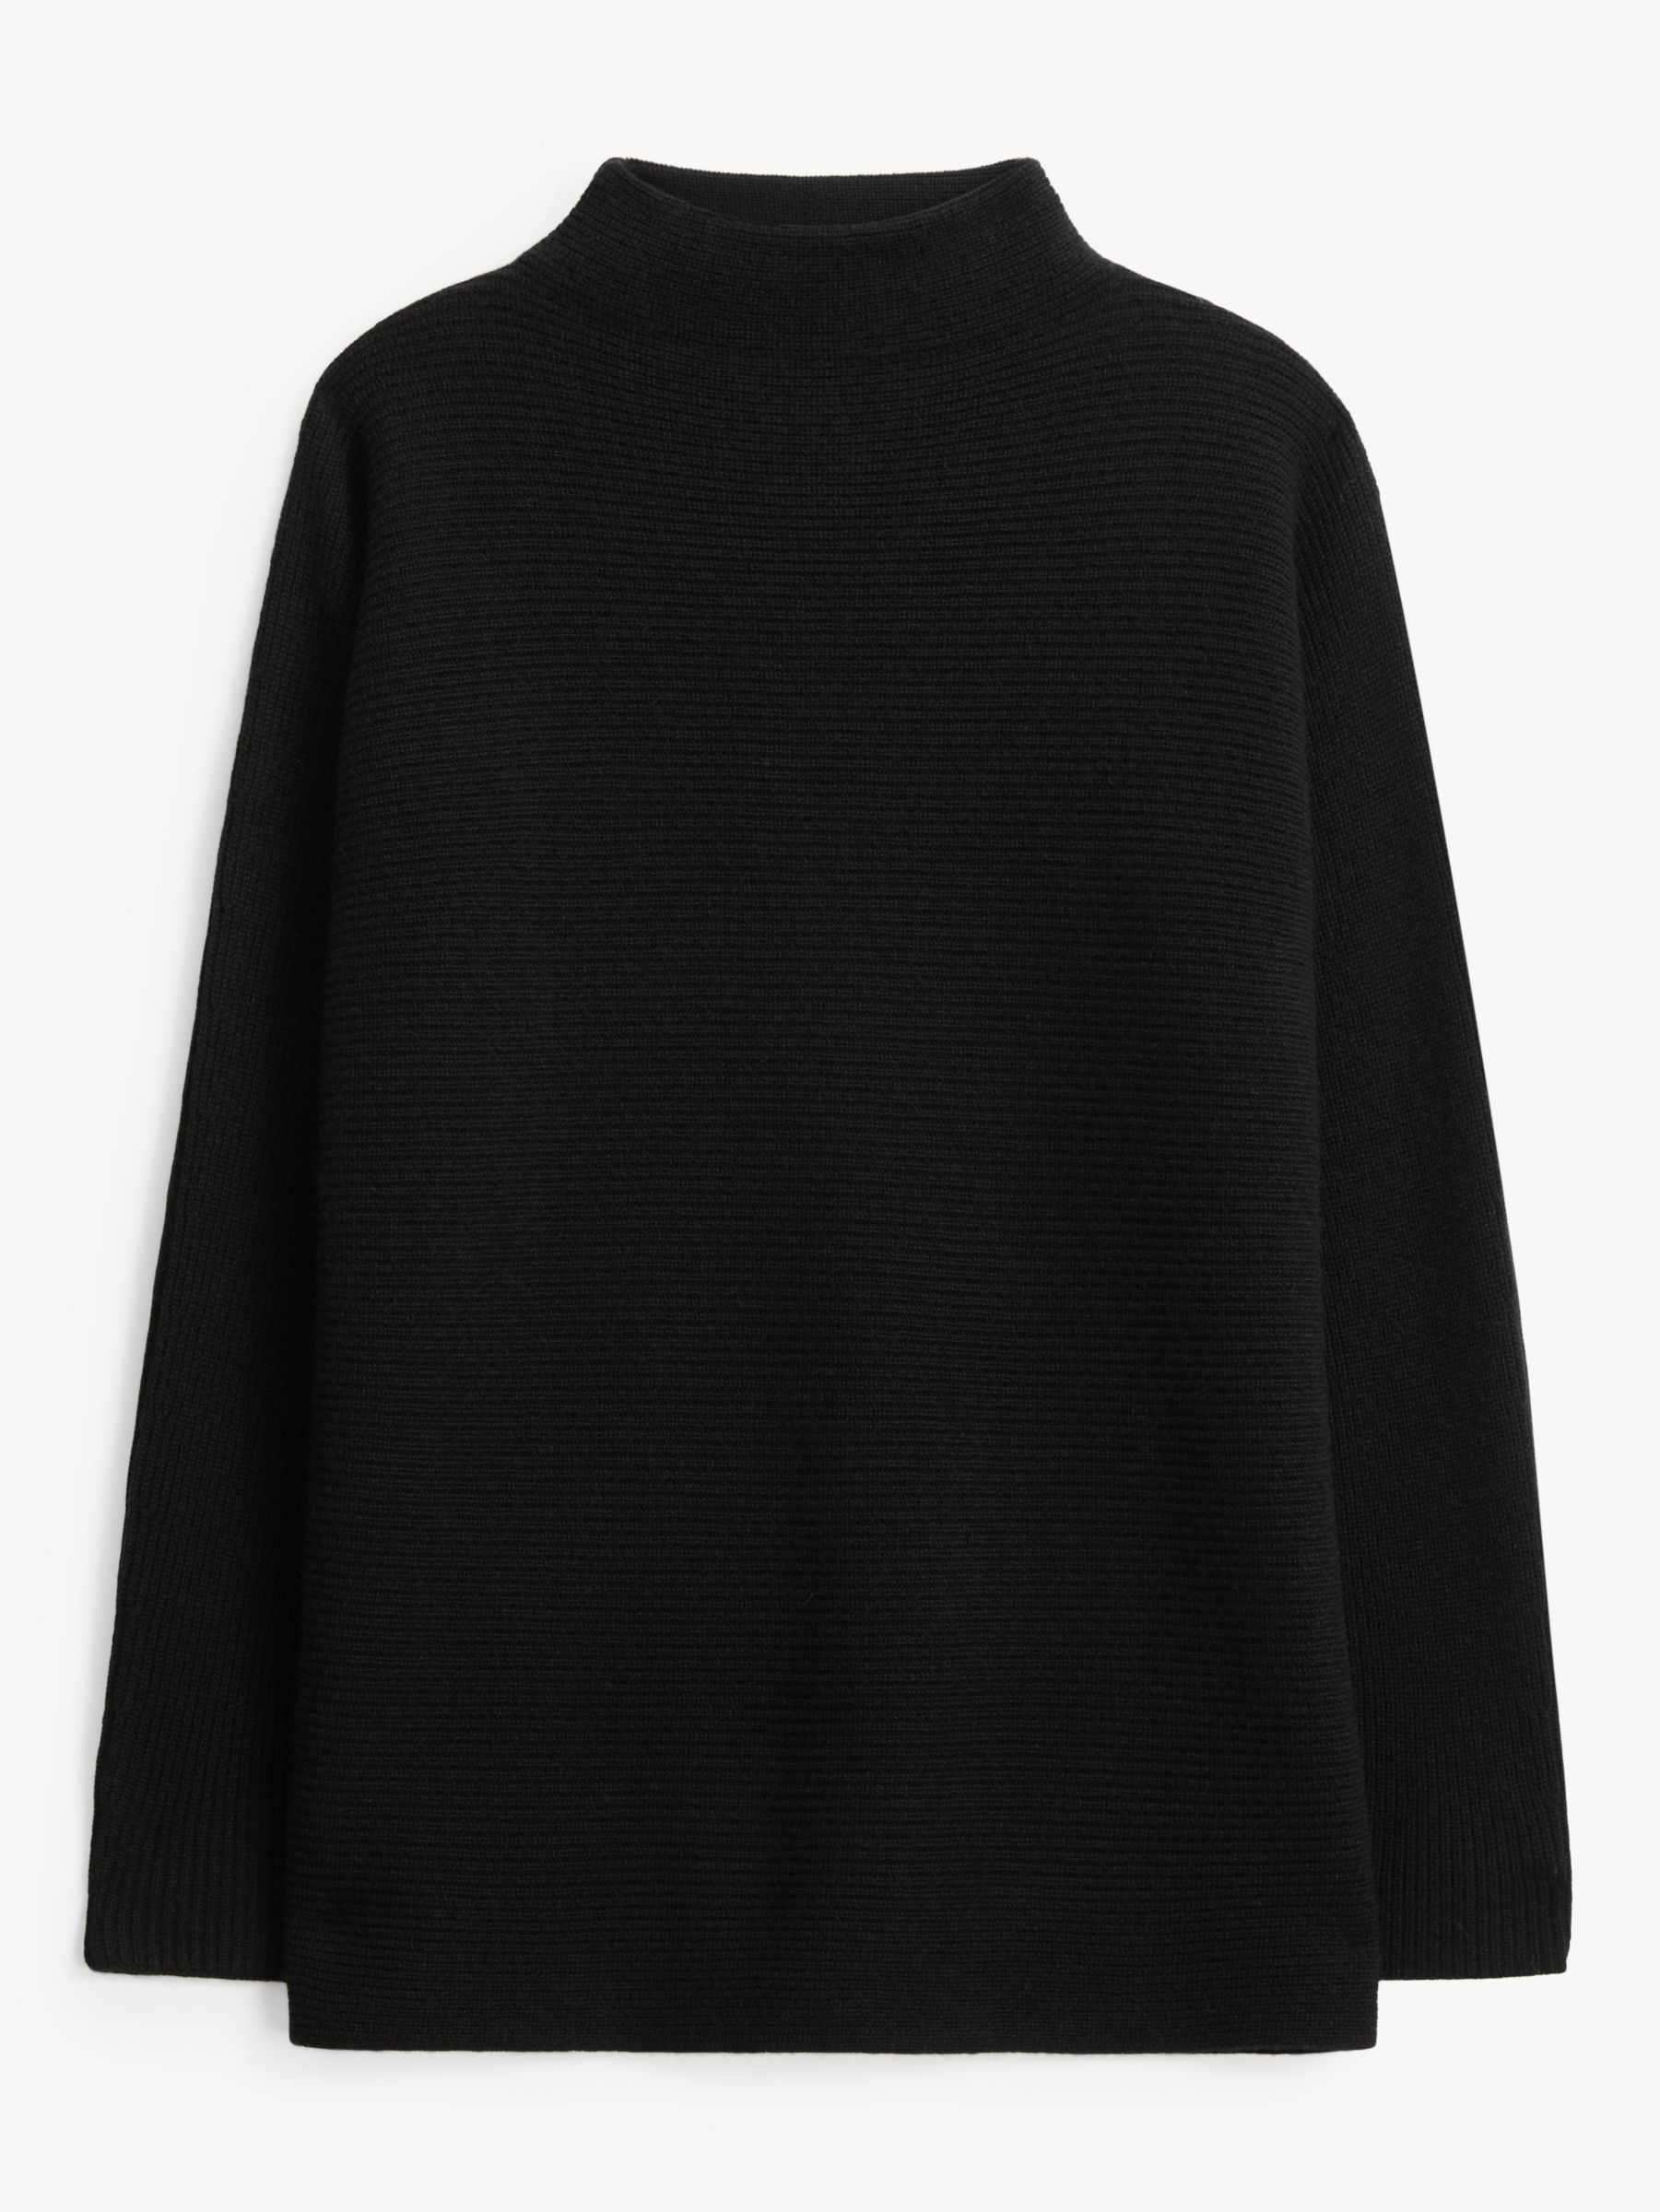 John Lewis & Partners Cashmere Funnel Neck Jumper